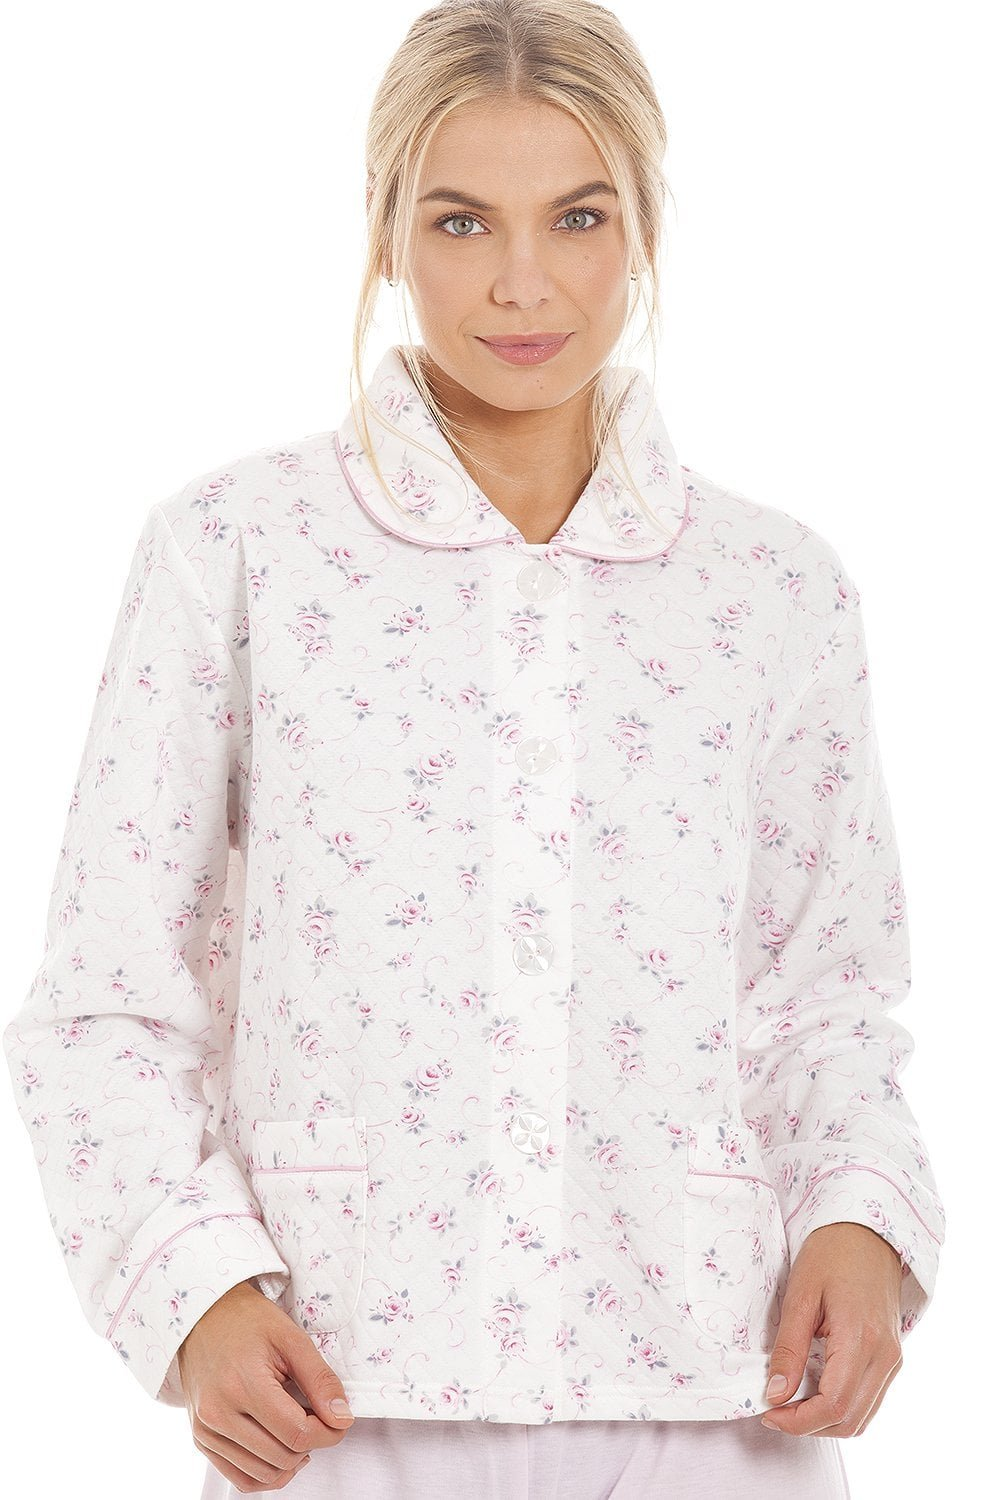 Camille Classic Pink Rose Print Quilted Bed Jacket 18/20 Pink